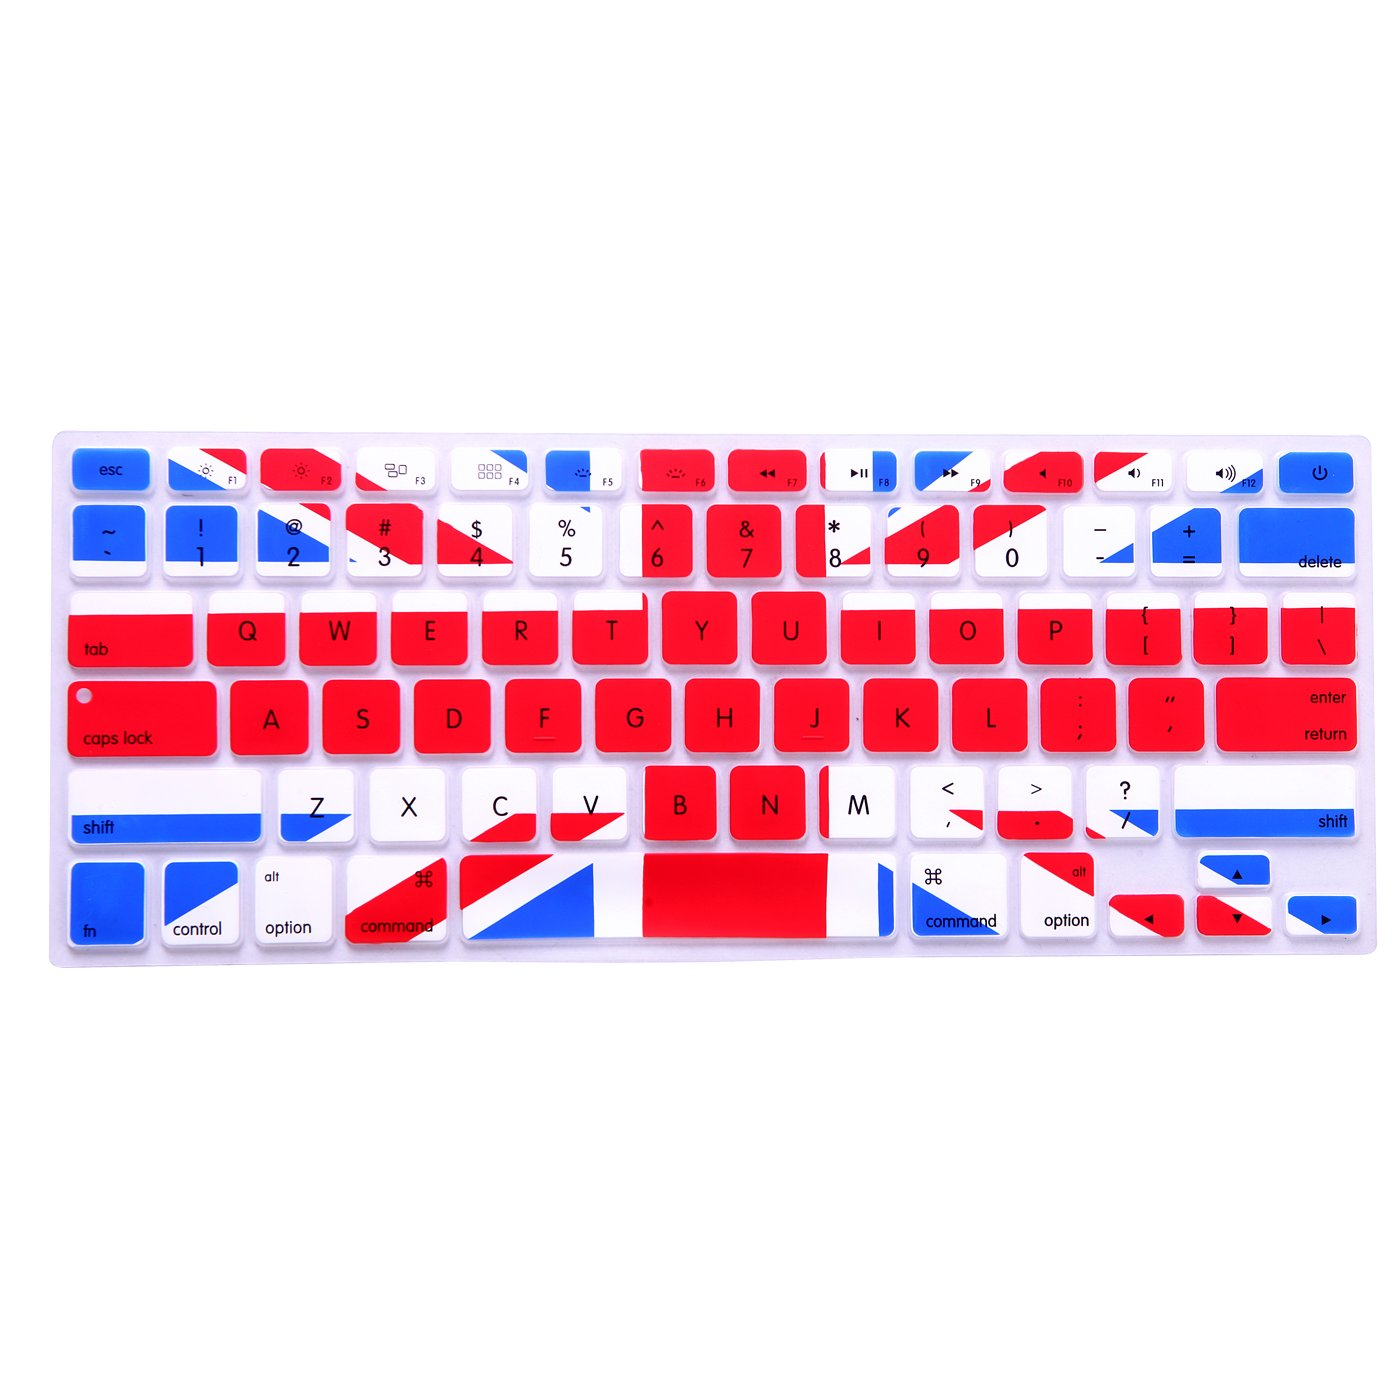 HDE Silicone Rubber Keyboard Skin Cover for Macbook Air 13 and MacBook Pro 13 Retina (Black) FBA_HDE-F172-2014